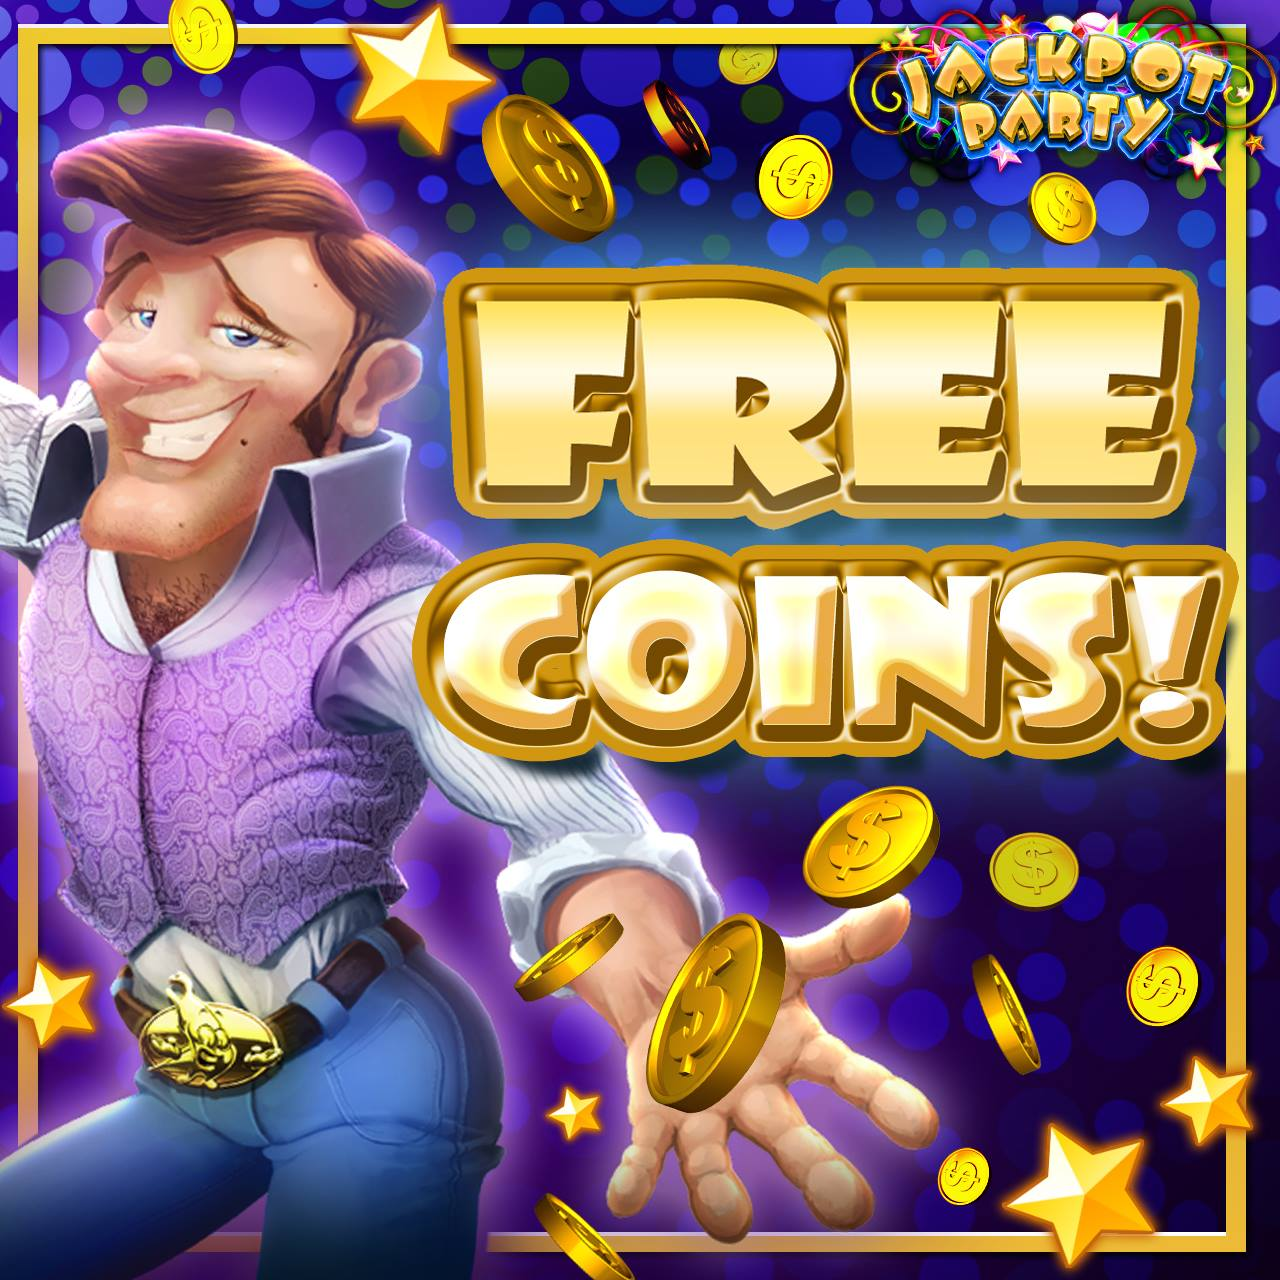 Get Free Coins for Jackpot Party Casino App (iPhone & Android)